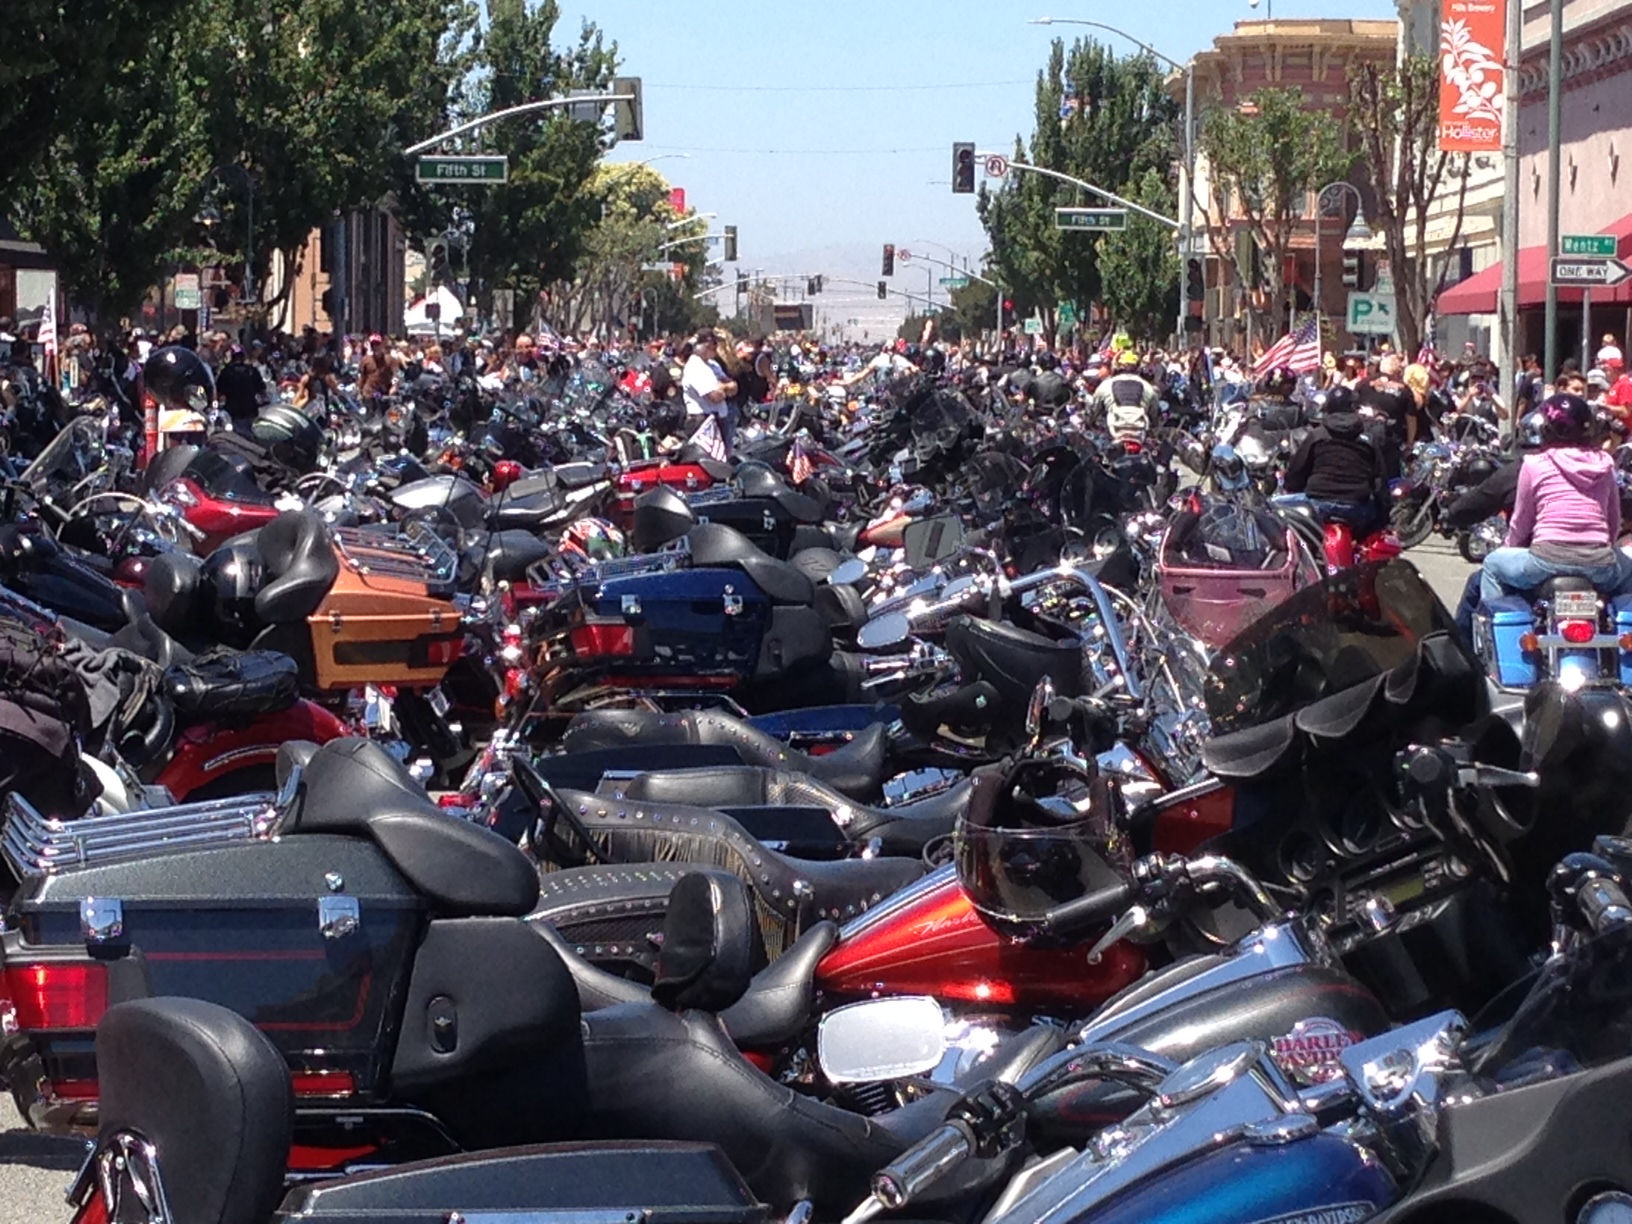 Ten Major Motorcycle Events In The United States